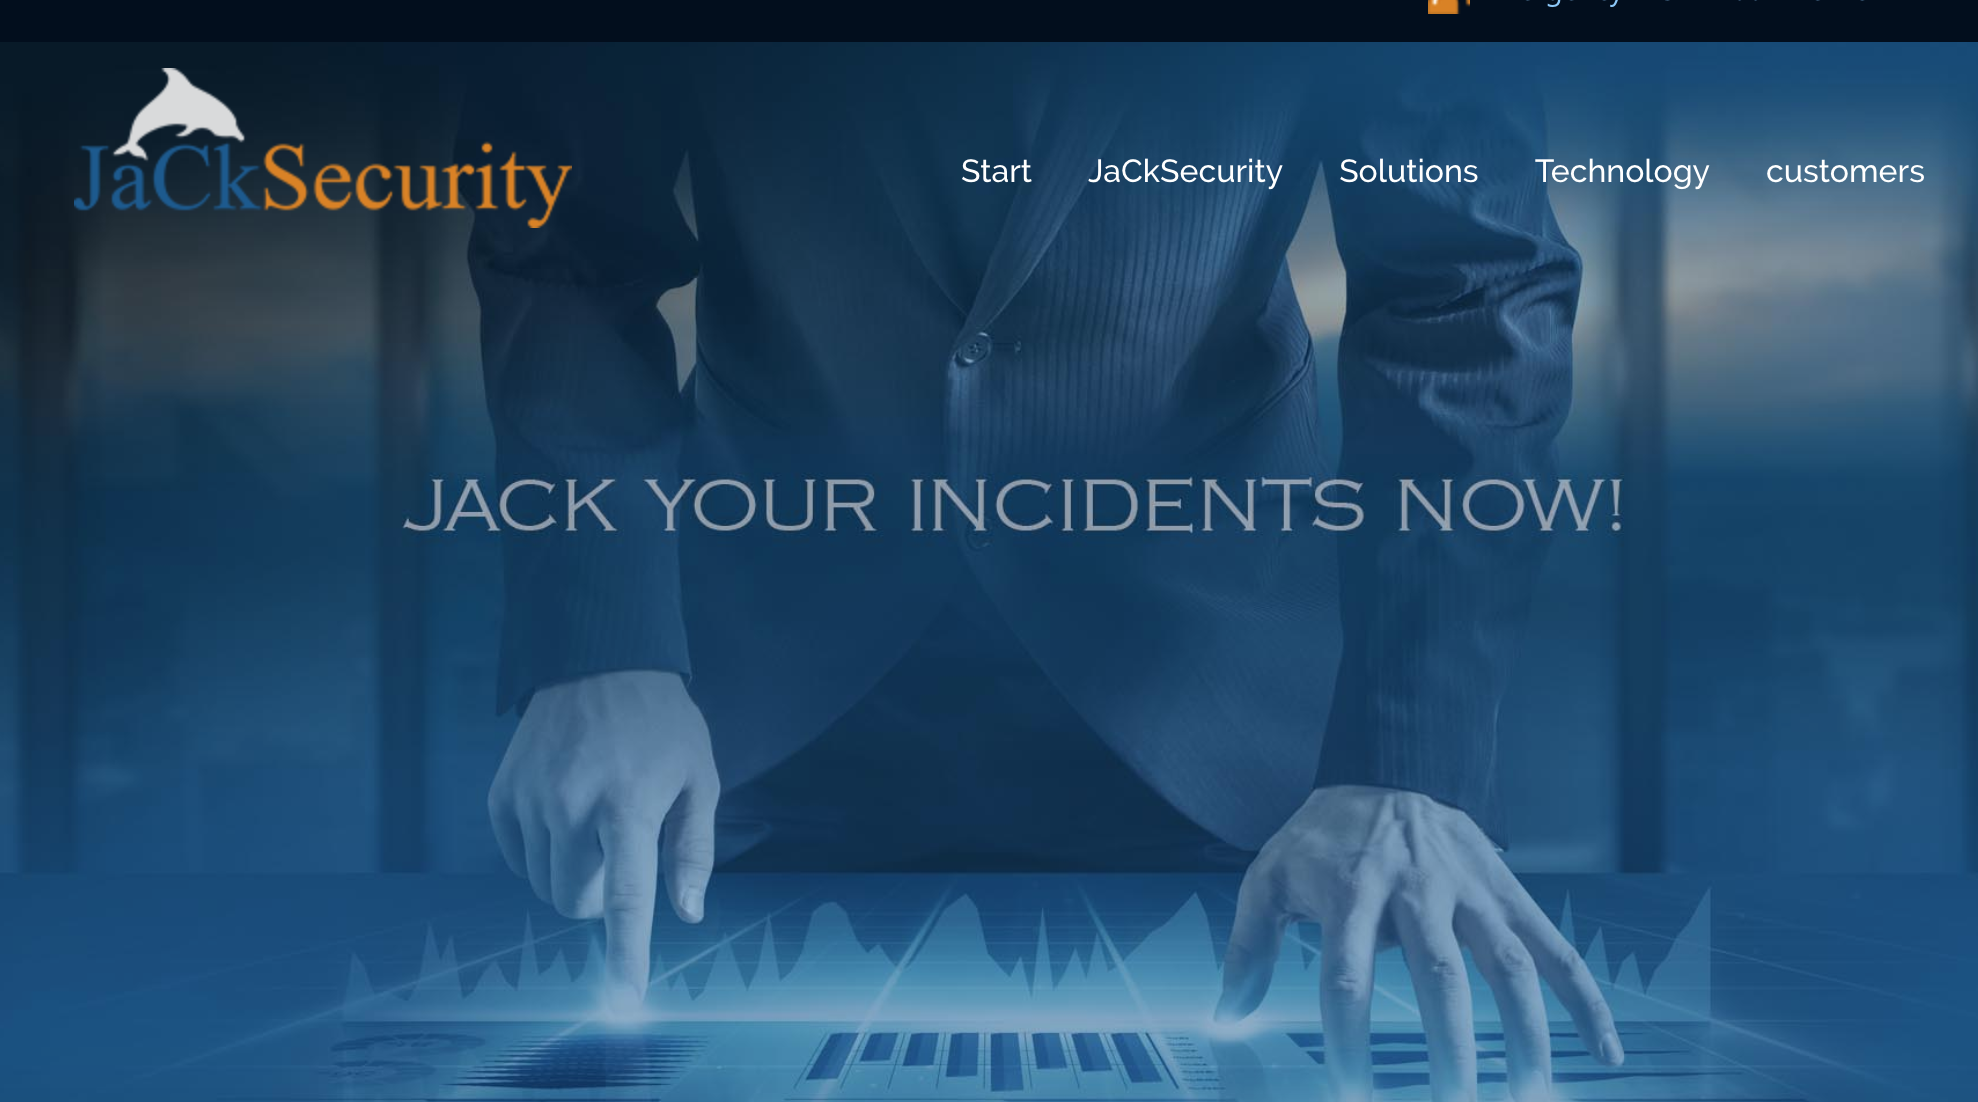 RedLine13 Services Partner JaCkSecurity